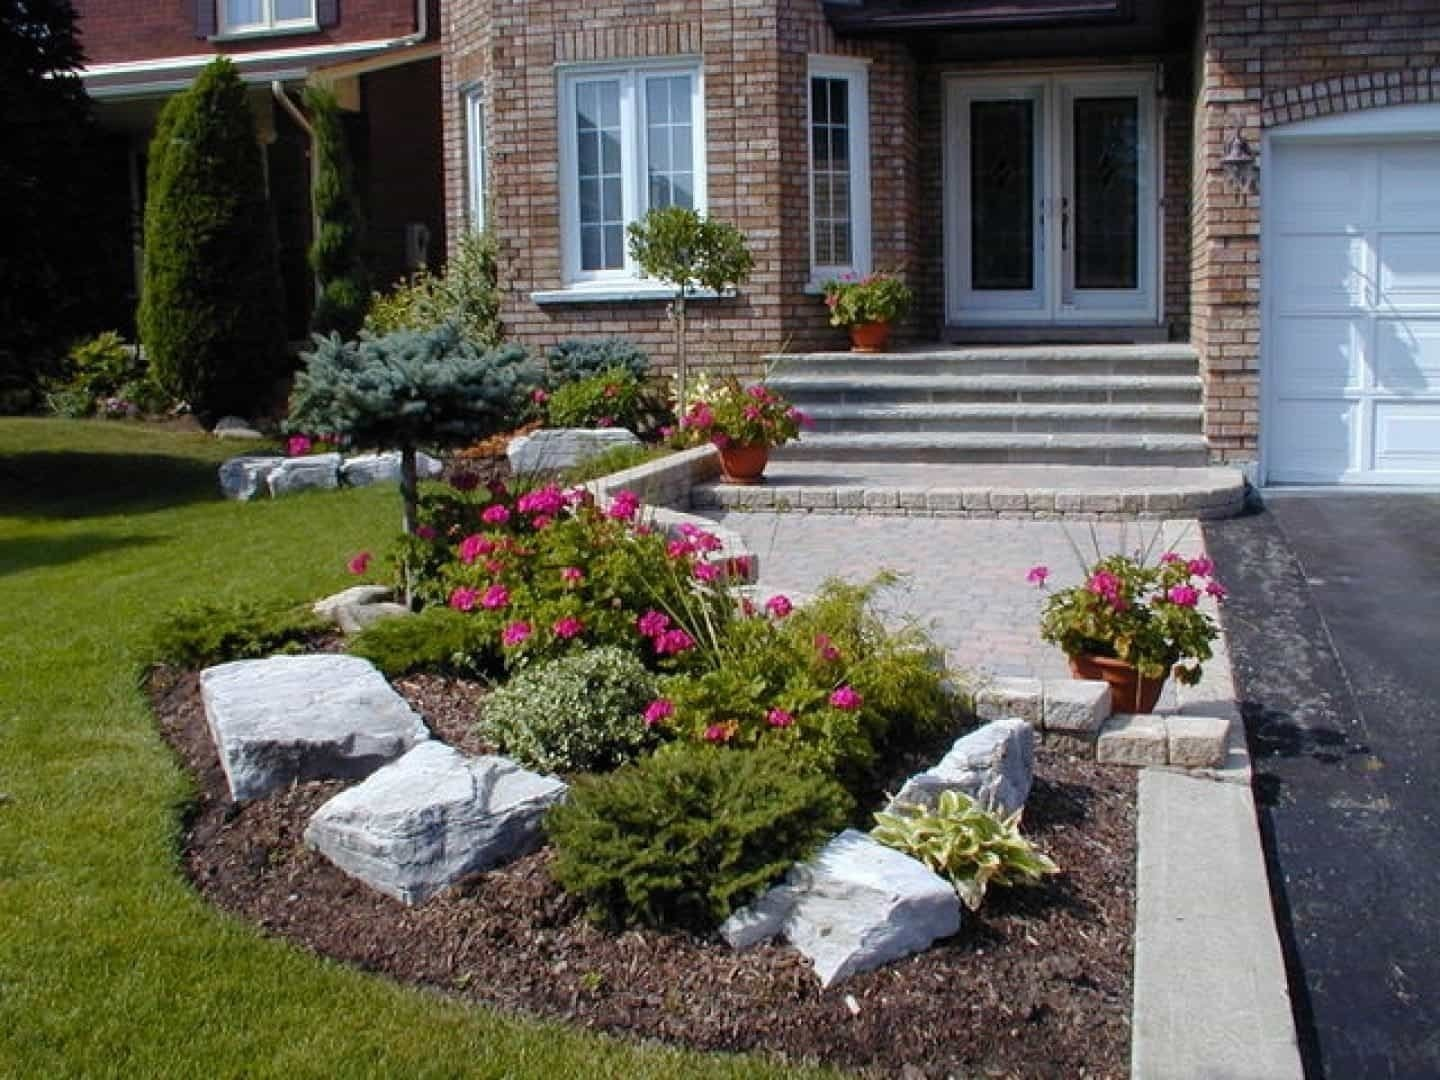 10 Wonderful Landscape Ideas For Small Front Yards small front yard with boulders and shrubs small front yard 2020